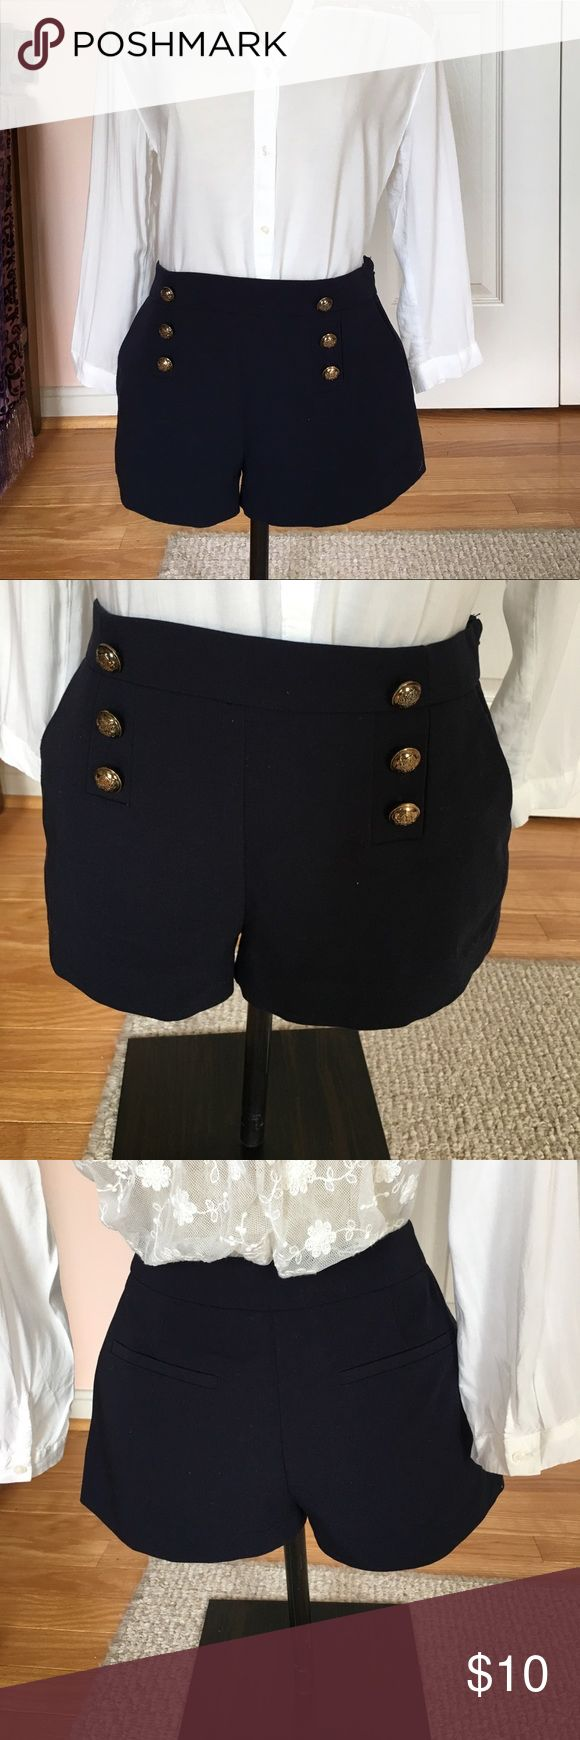 Blue sailor/ nautical shorts Super cute sailor/ nautical shirts. Three gold buttons with anchors on them down each side. Great condition, worn a few times but in like new condition. I take good care of my clothes so there's no holes, stains, etc. Forever 21 Shorts